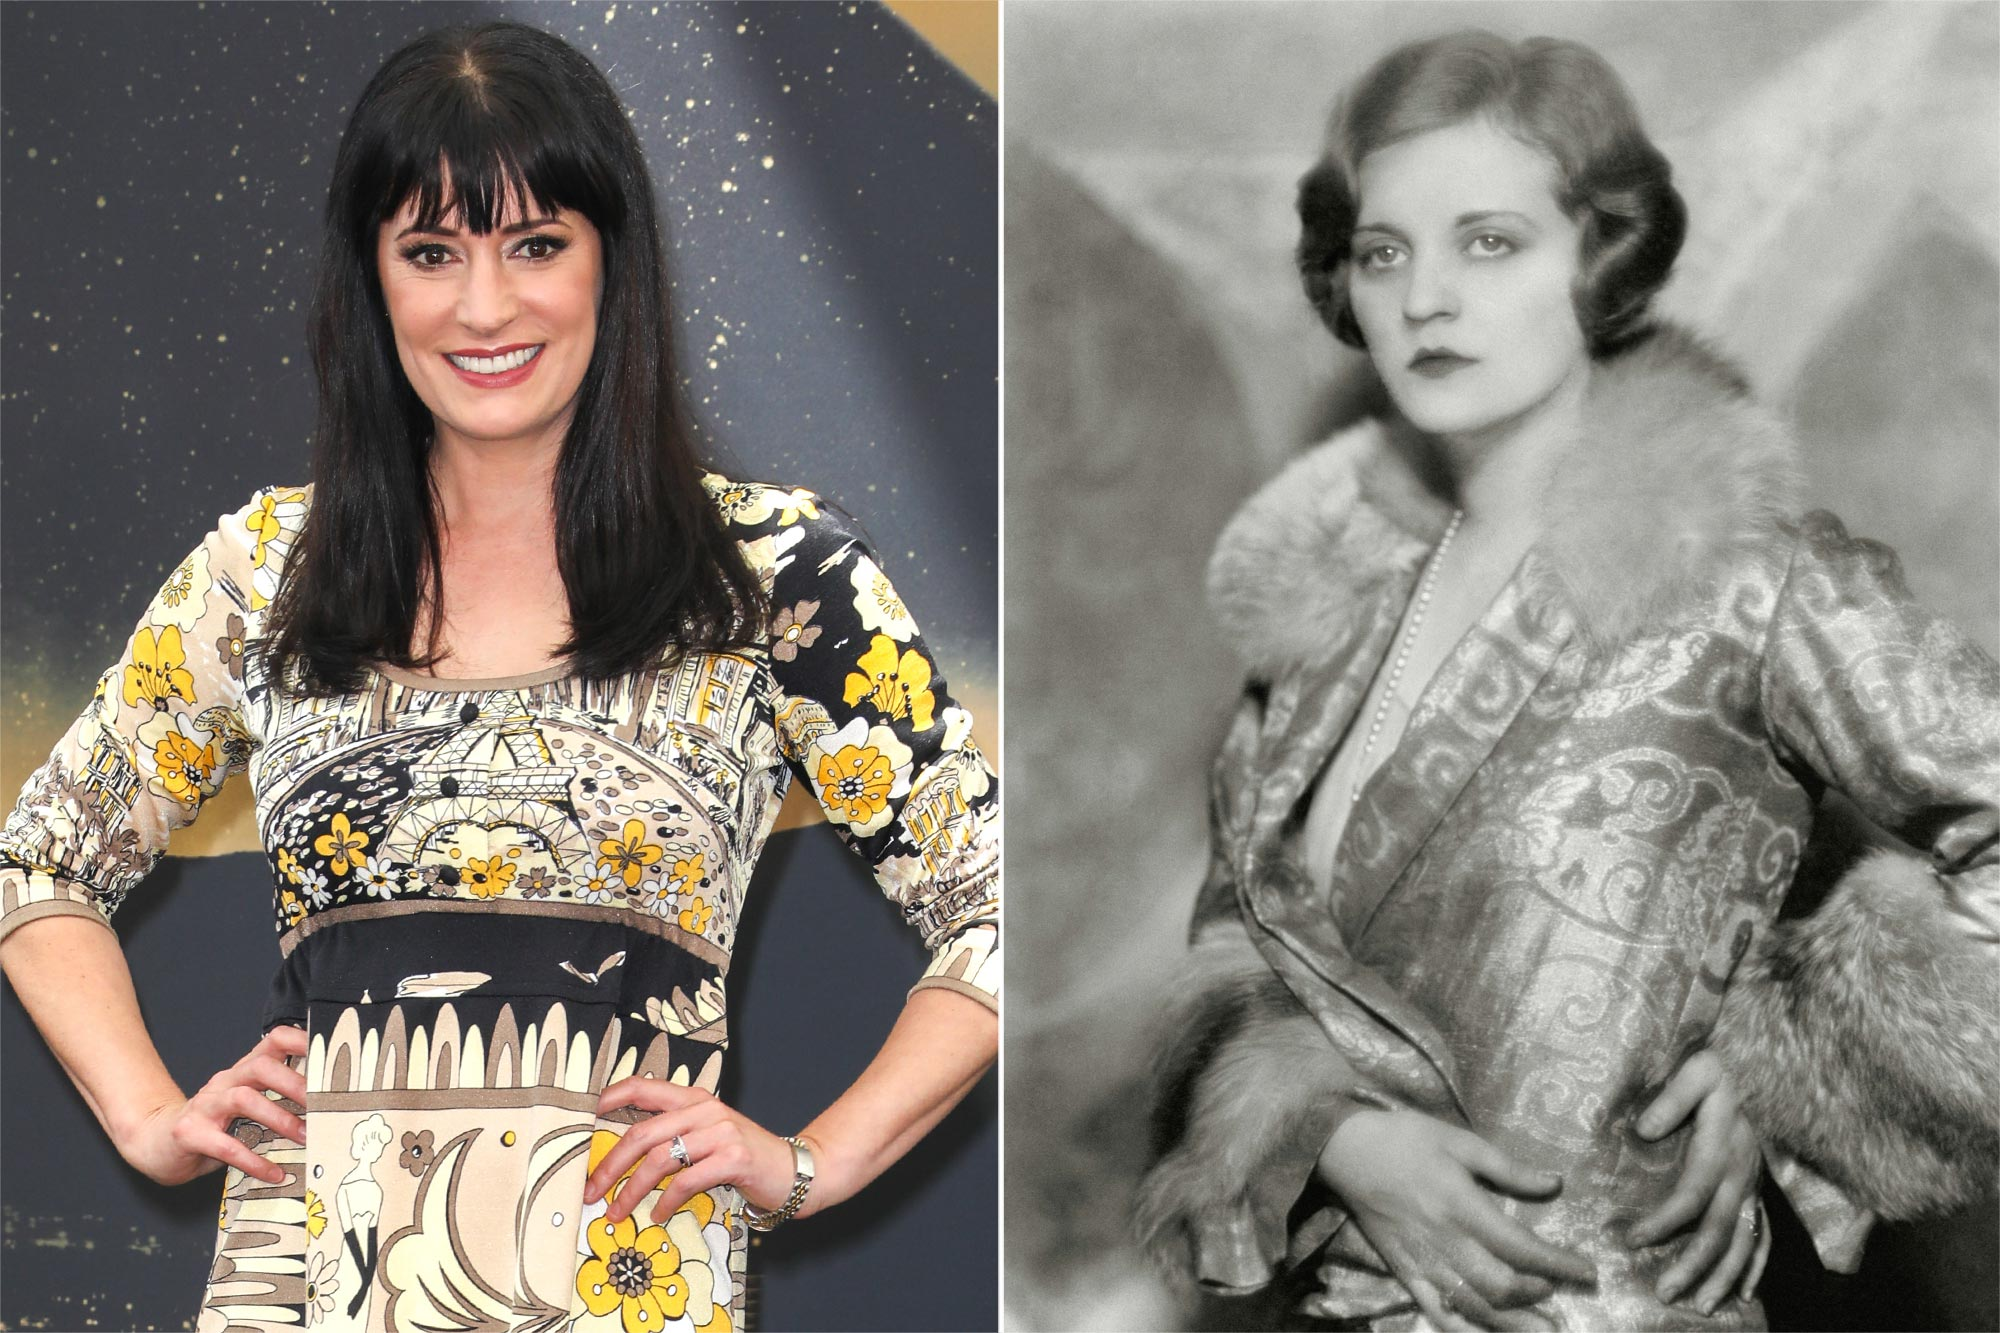 Paget Brewster, Tallulah Bankhead